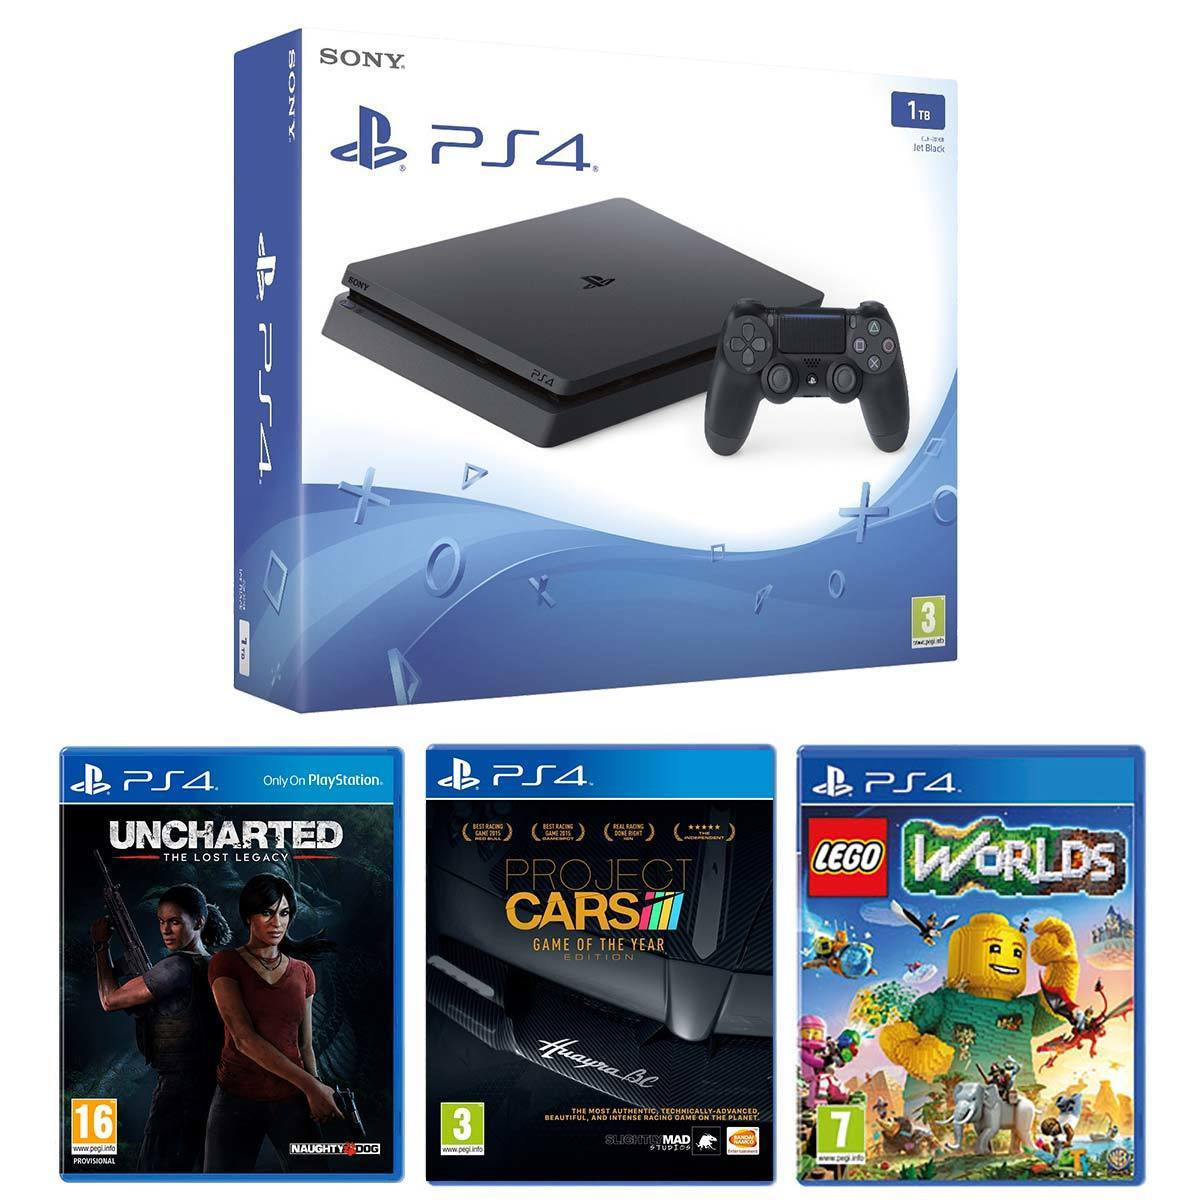 Playstation 4 Slim 1tb With Uncharted Lost Legacy Lego Worlds And Sony World Ps4 Project Cars